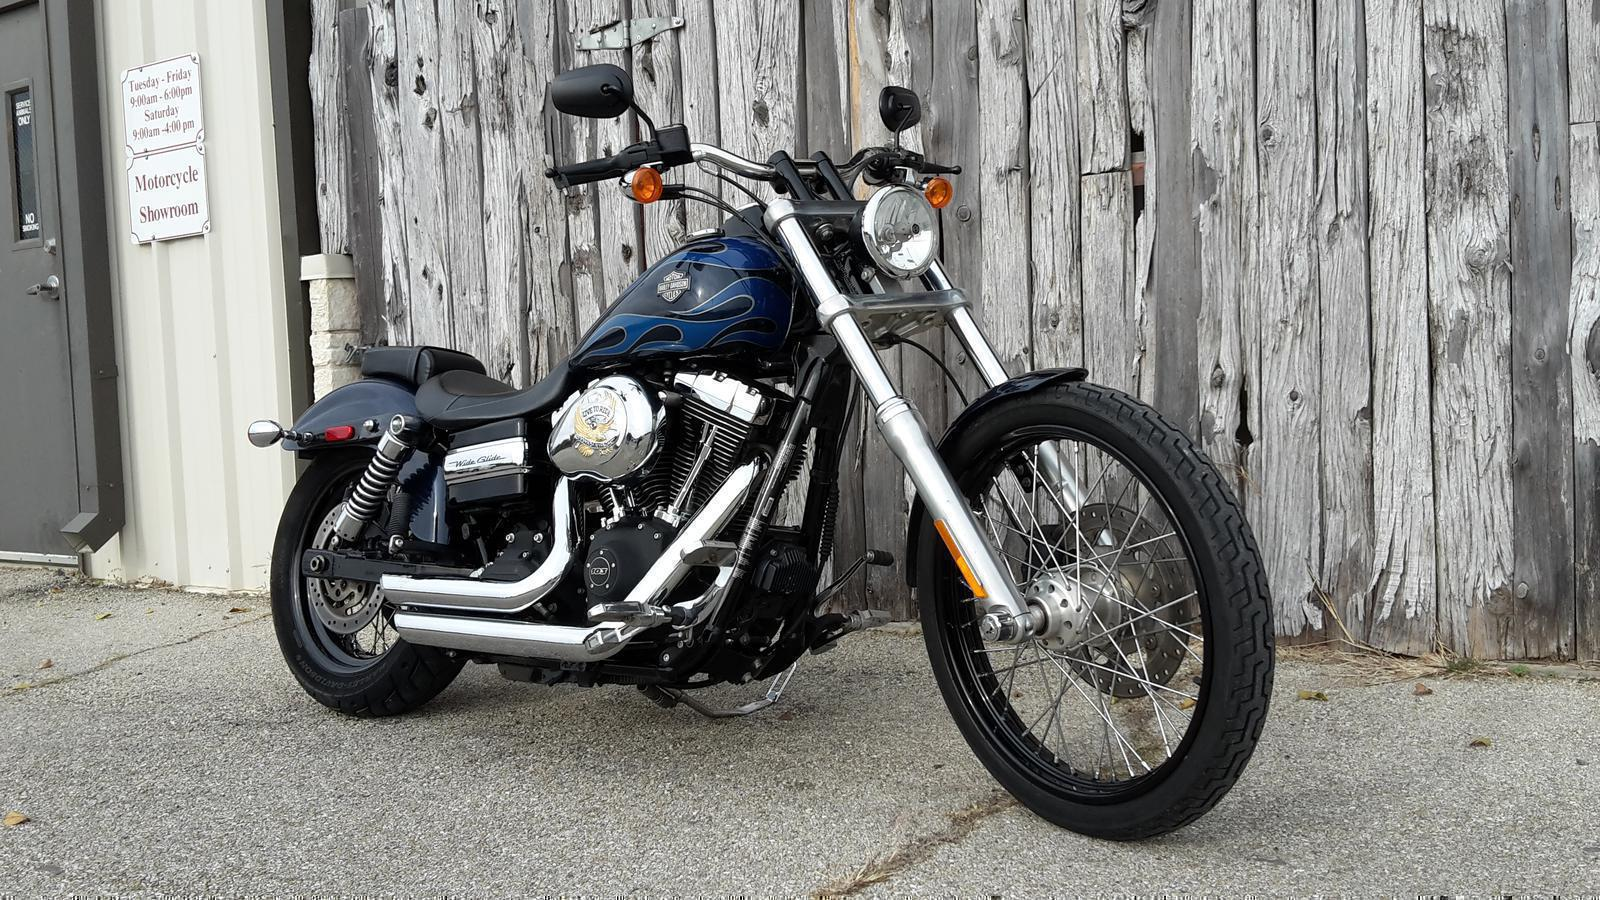 2012 harley davidson fxdwg dyna wide glide for sale in waco tx 2012 harley davidson fxdwg dyna wide glide for sale in waco tx legend cycles 254 752 3302 fandeluxe Image collections